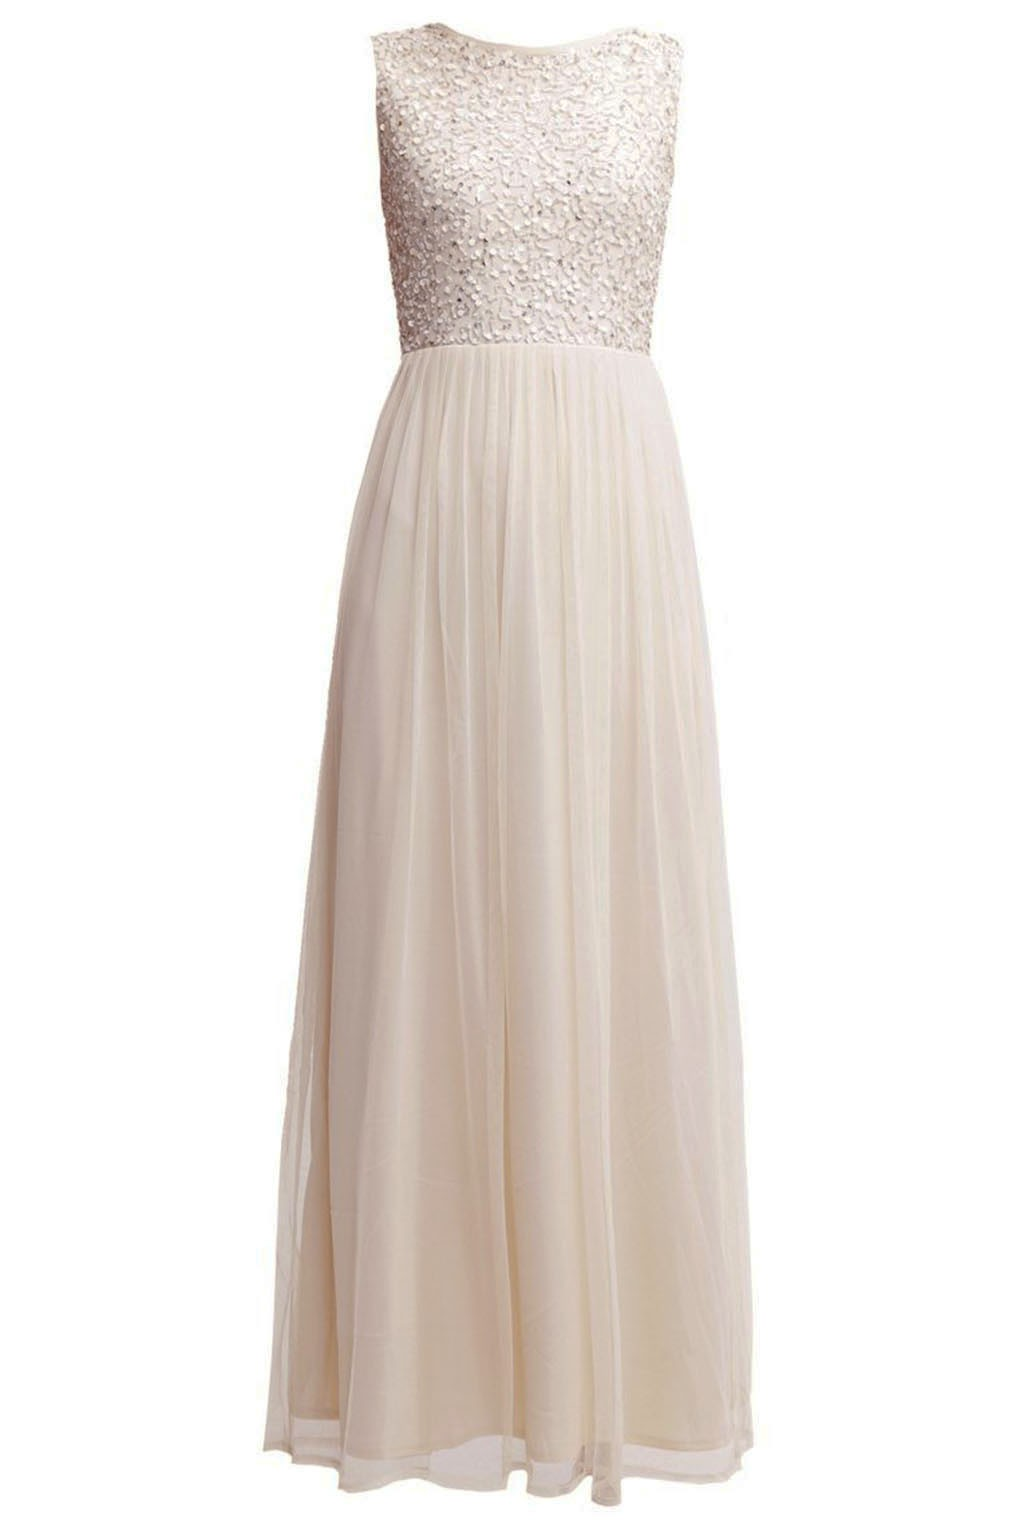 lace beads belle nude maxi dress party dresses. Black Bedroom Furniture Sets. Home Design Ideas